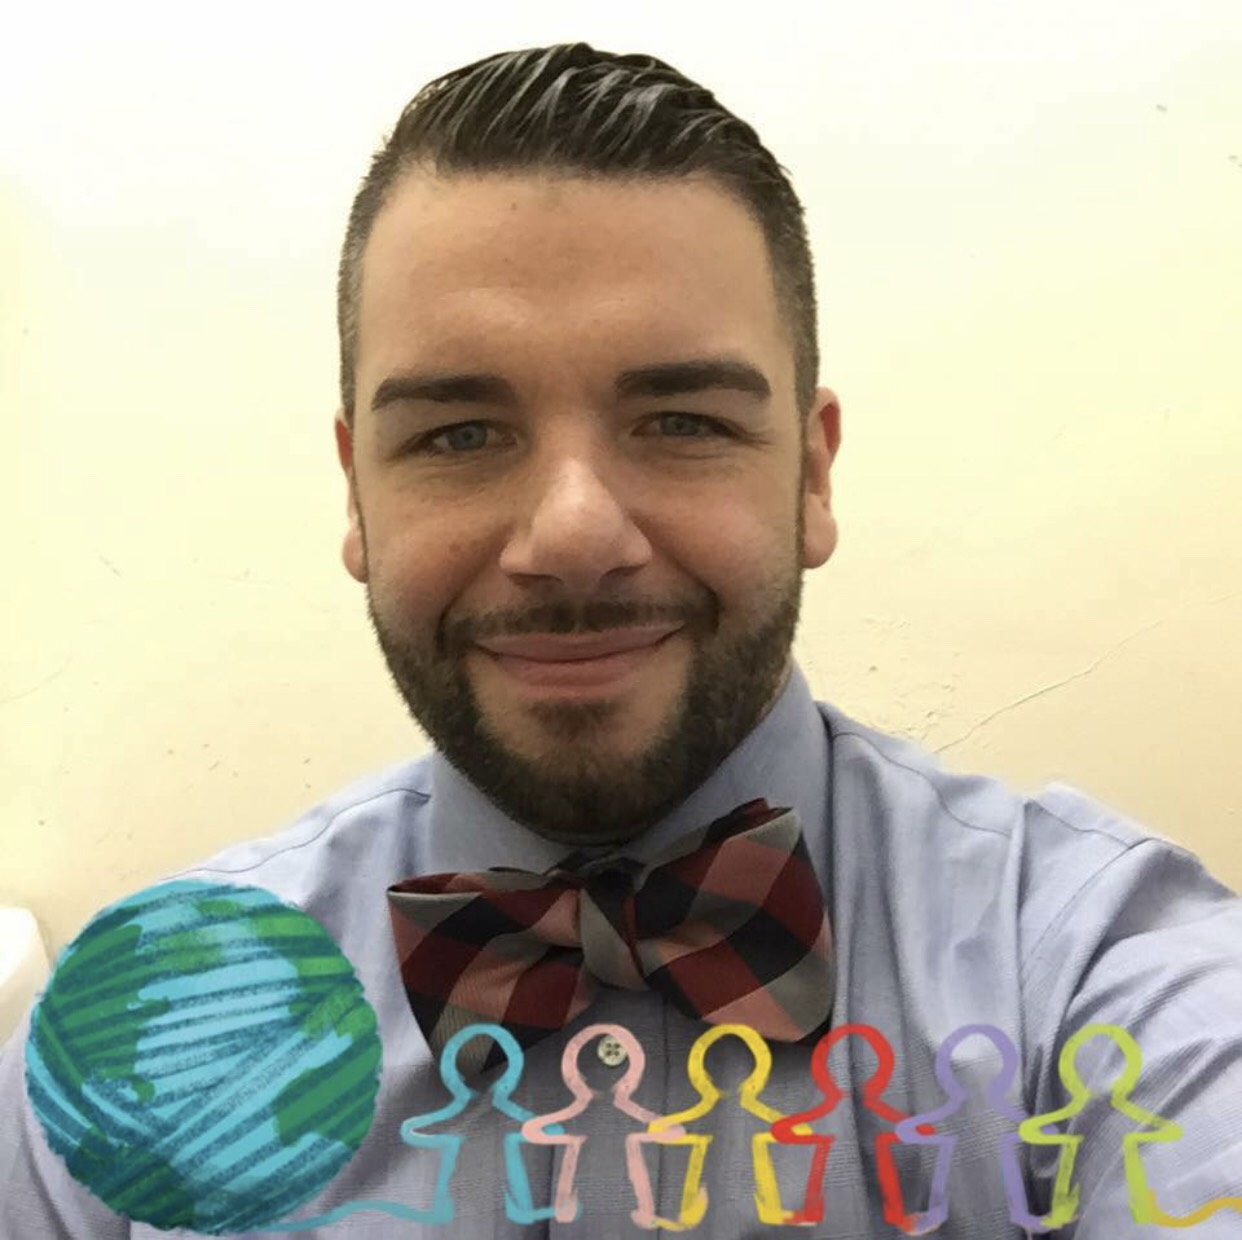 victor garcia,asst. principal - I started with the DOE as a Special Education teacher. During that time my desire to impact young students lives, ignited into my life's passion. Since being a Special Education teacher, I was also a Dean, Literacy Coach and now Assistant Principal; inspiring the lives of the students in PS 6X West Farms.